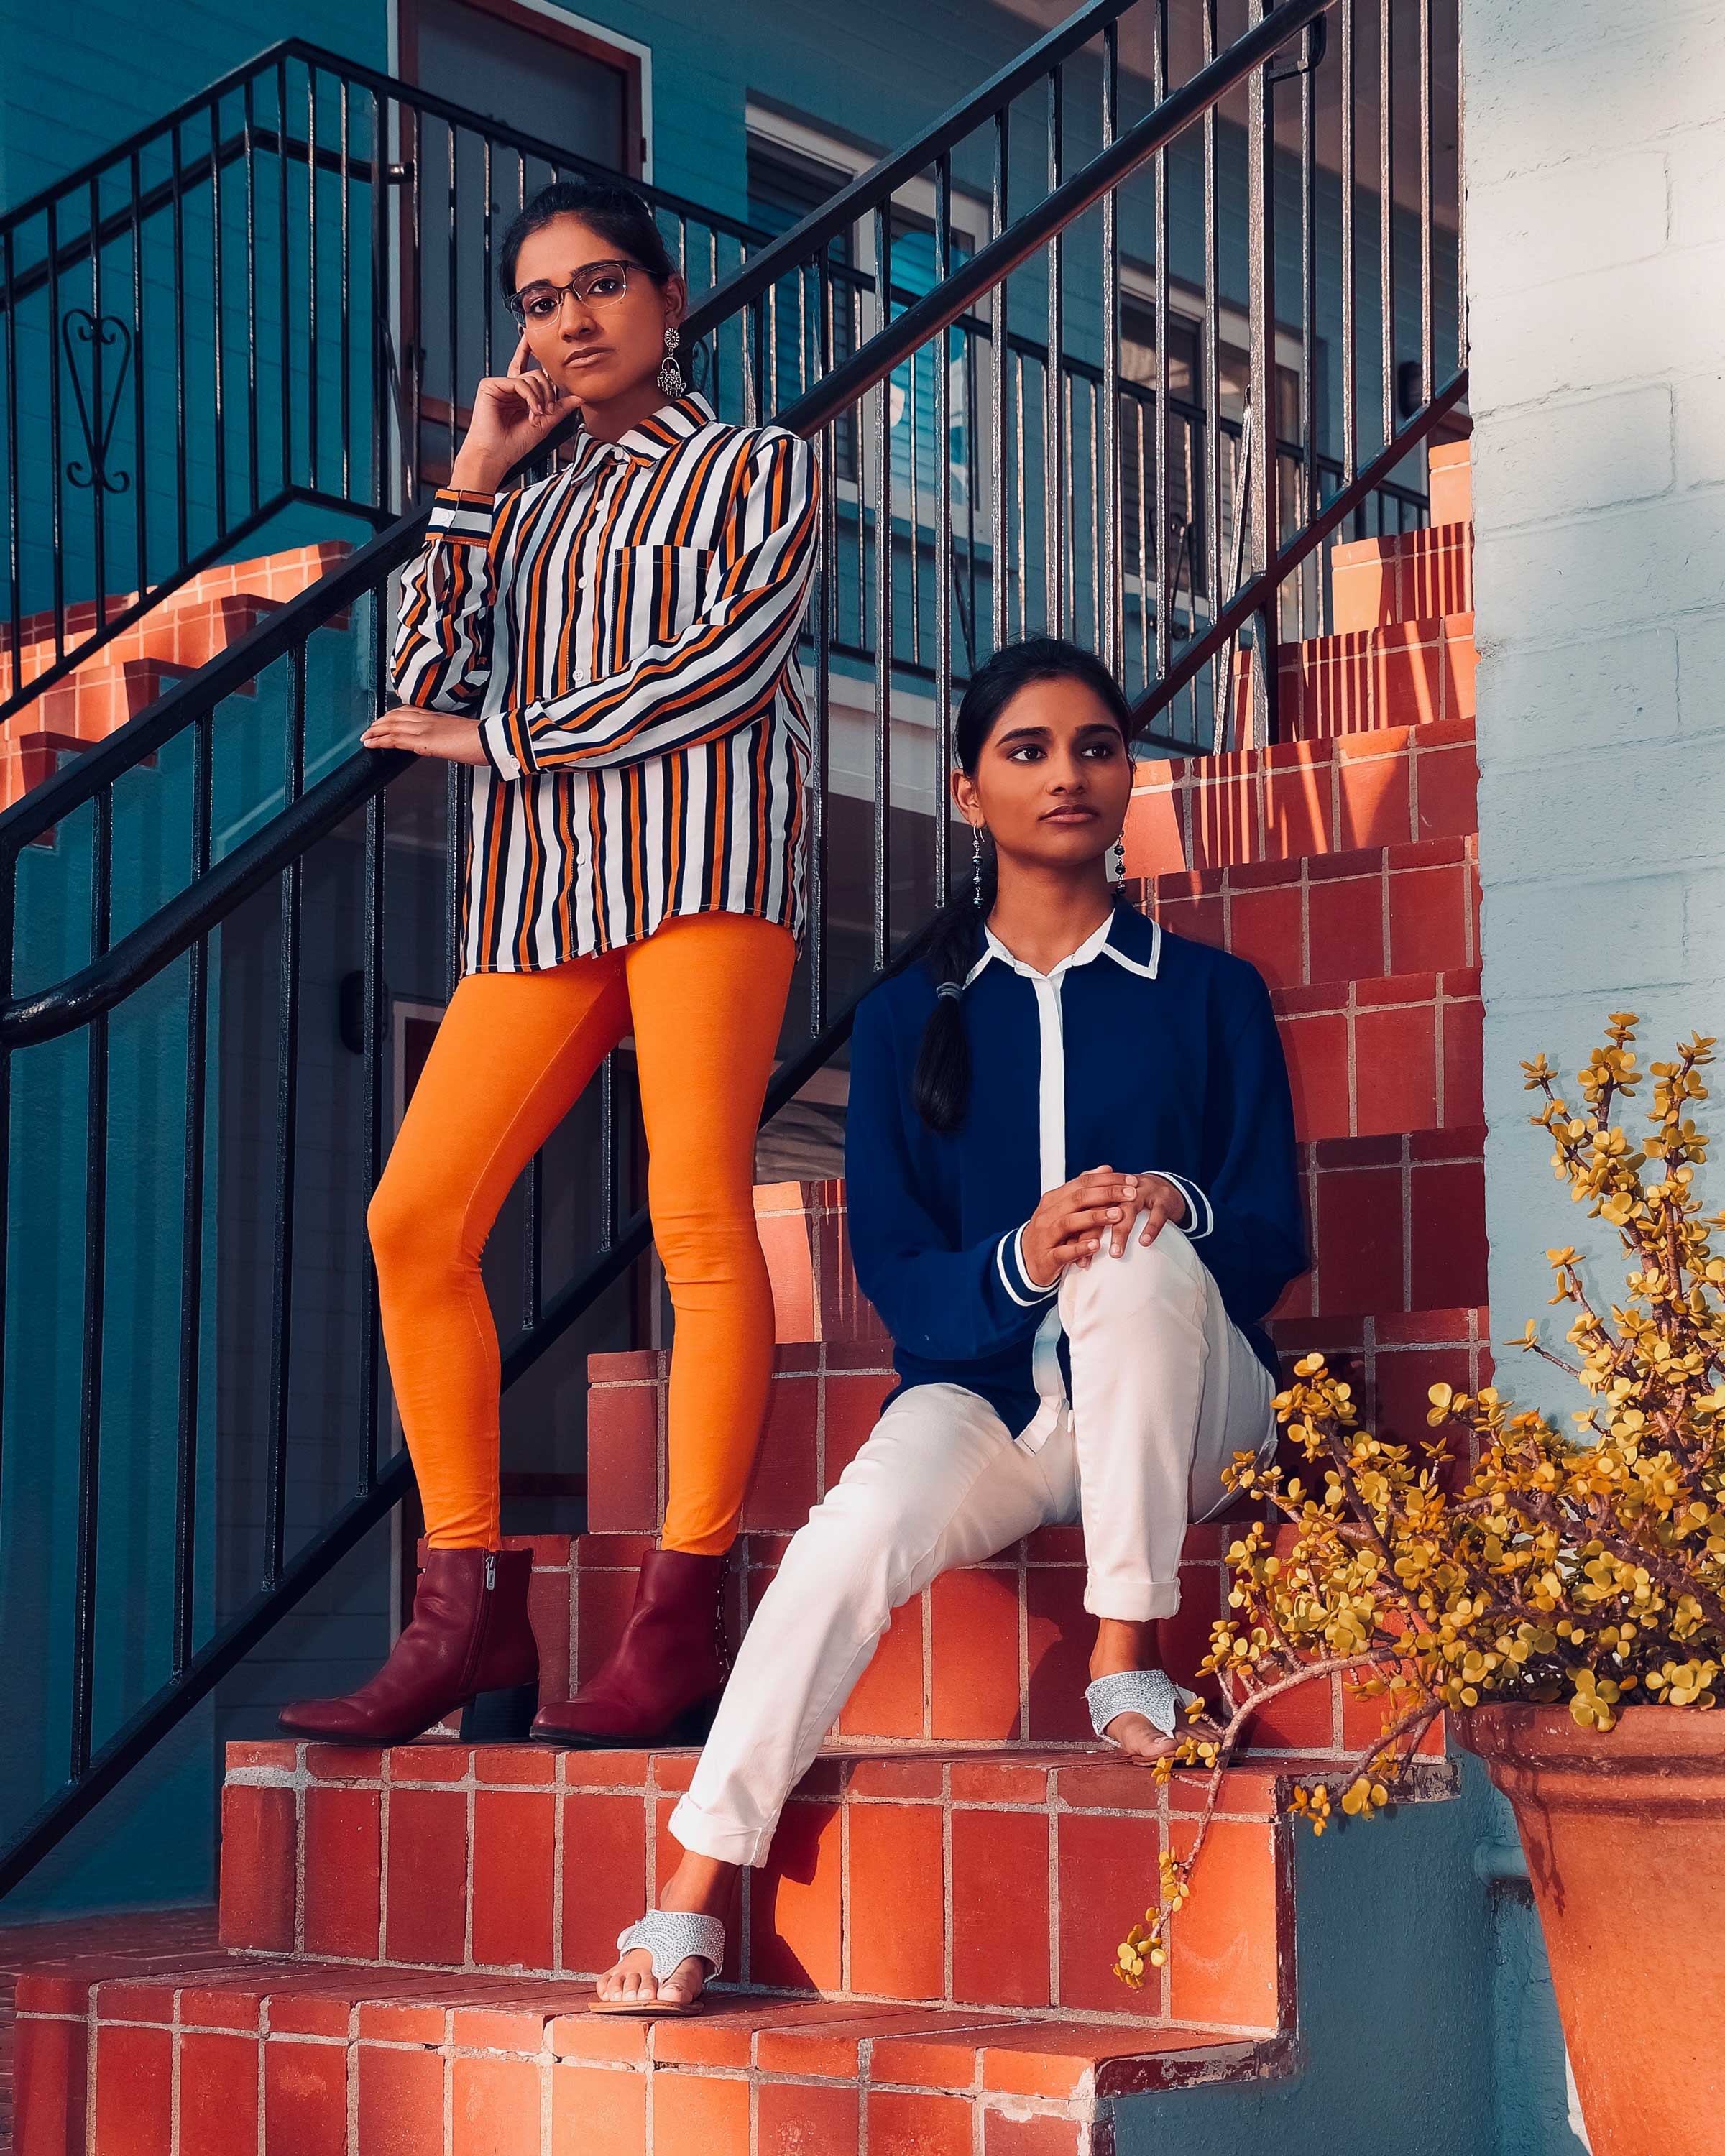 Twin sisters Kiran and Nivi (@kiranandnivi), who sing covers of popular songs, have over 60,000 TikTok followers. (Kiran and Nivi)